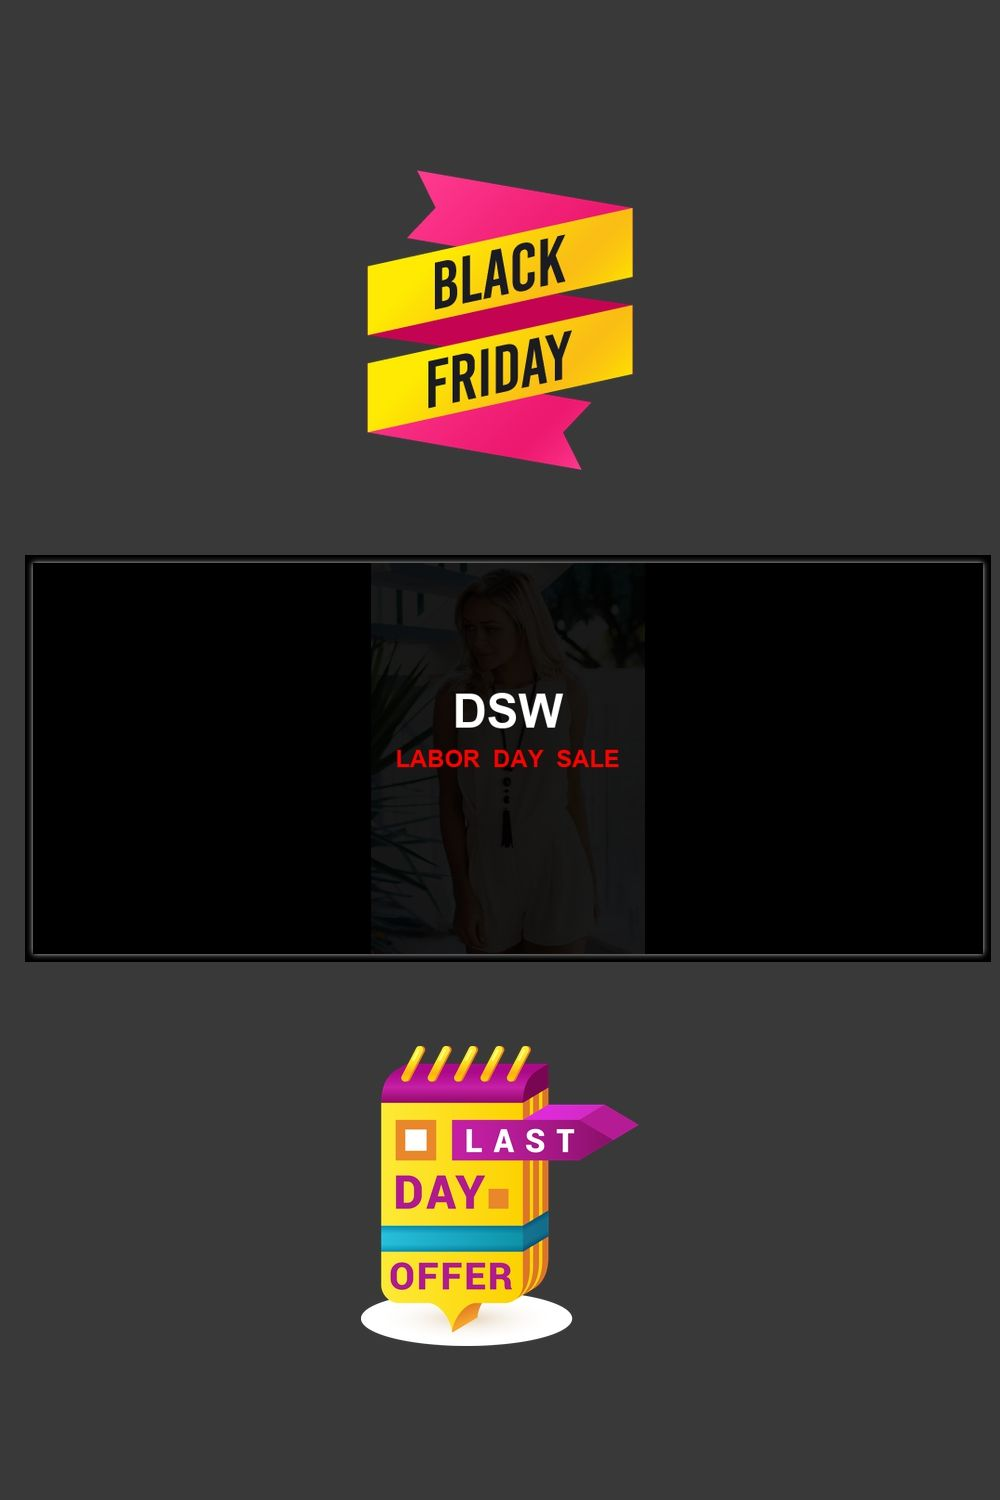 7 Best Dsw Labor Day Deals Up To 50 Off 2020 In 2020 Dsw Labor Day Meaning Day